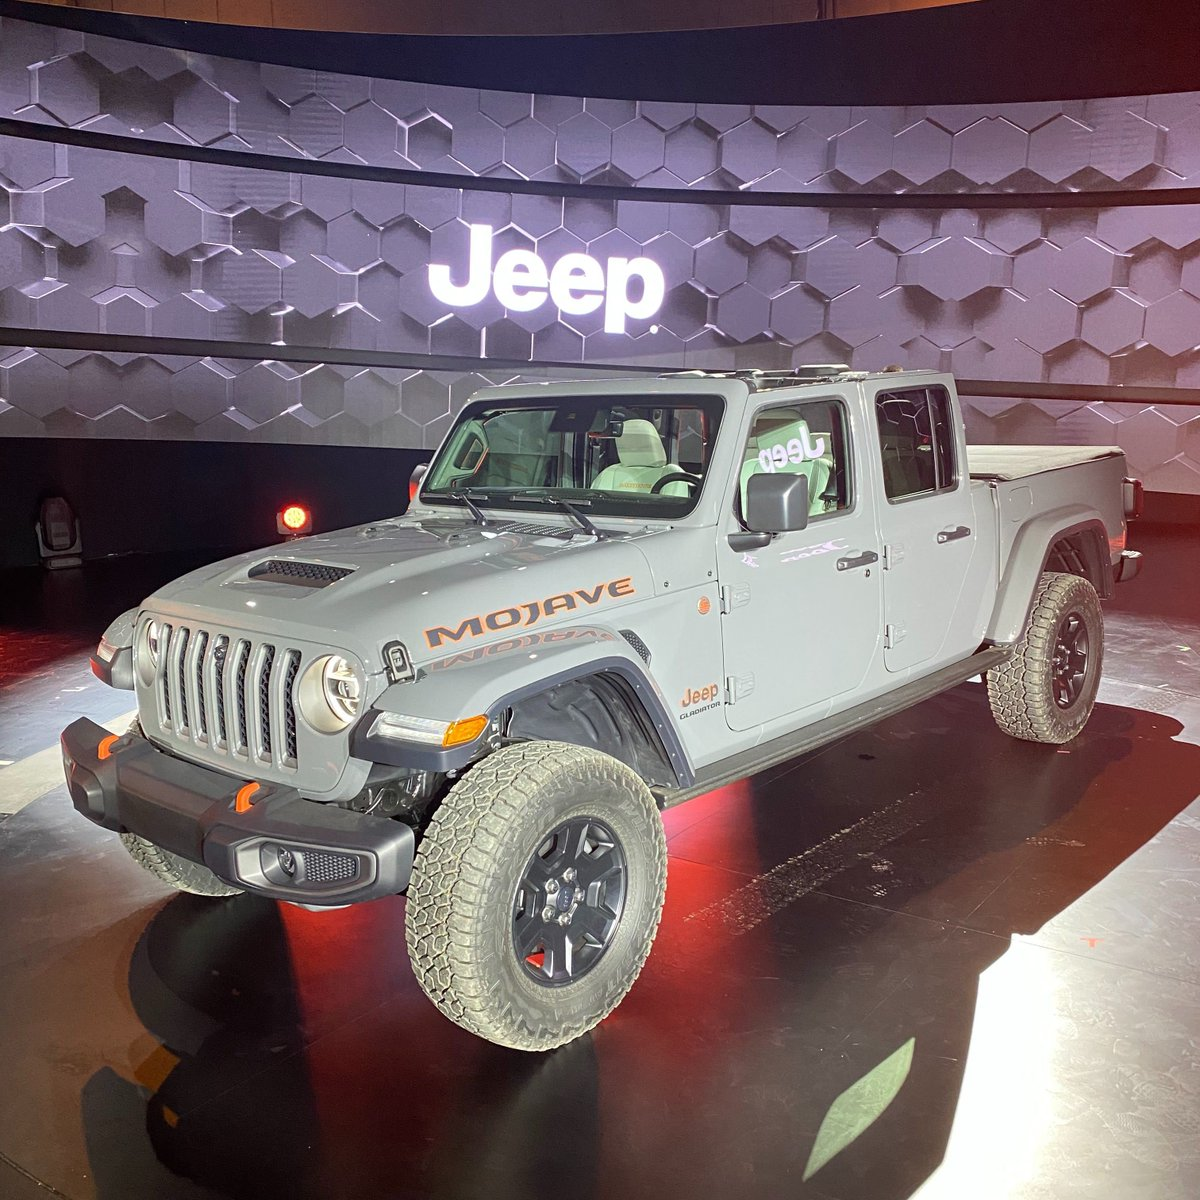 Edmunds On Twitter 2020 Jeep Gladiator Mojave Details That Added 1 Inch Of Ground Clearance Necessary To Make This A Dune Going Truck Https T Co Rkocqygtu9 Https T Co Edkibbjrzq